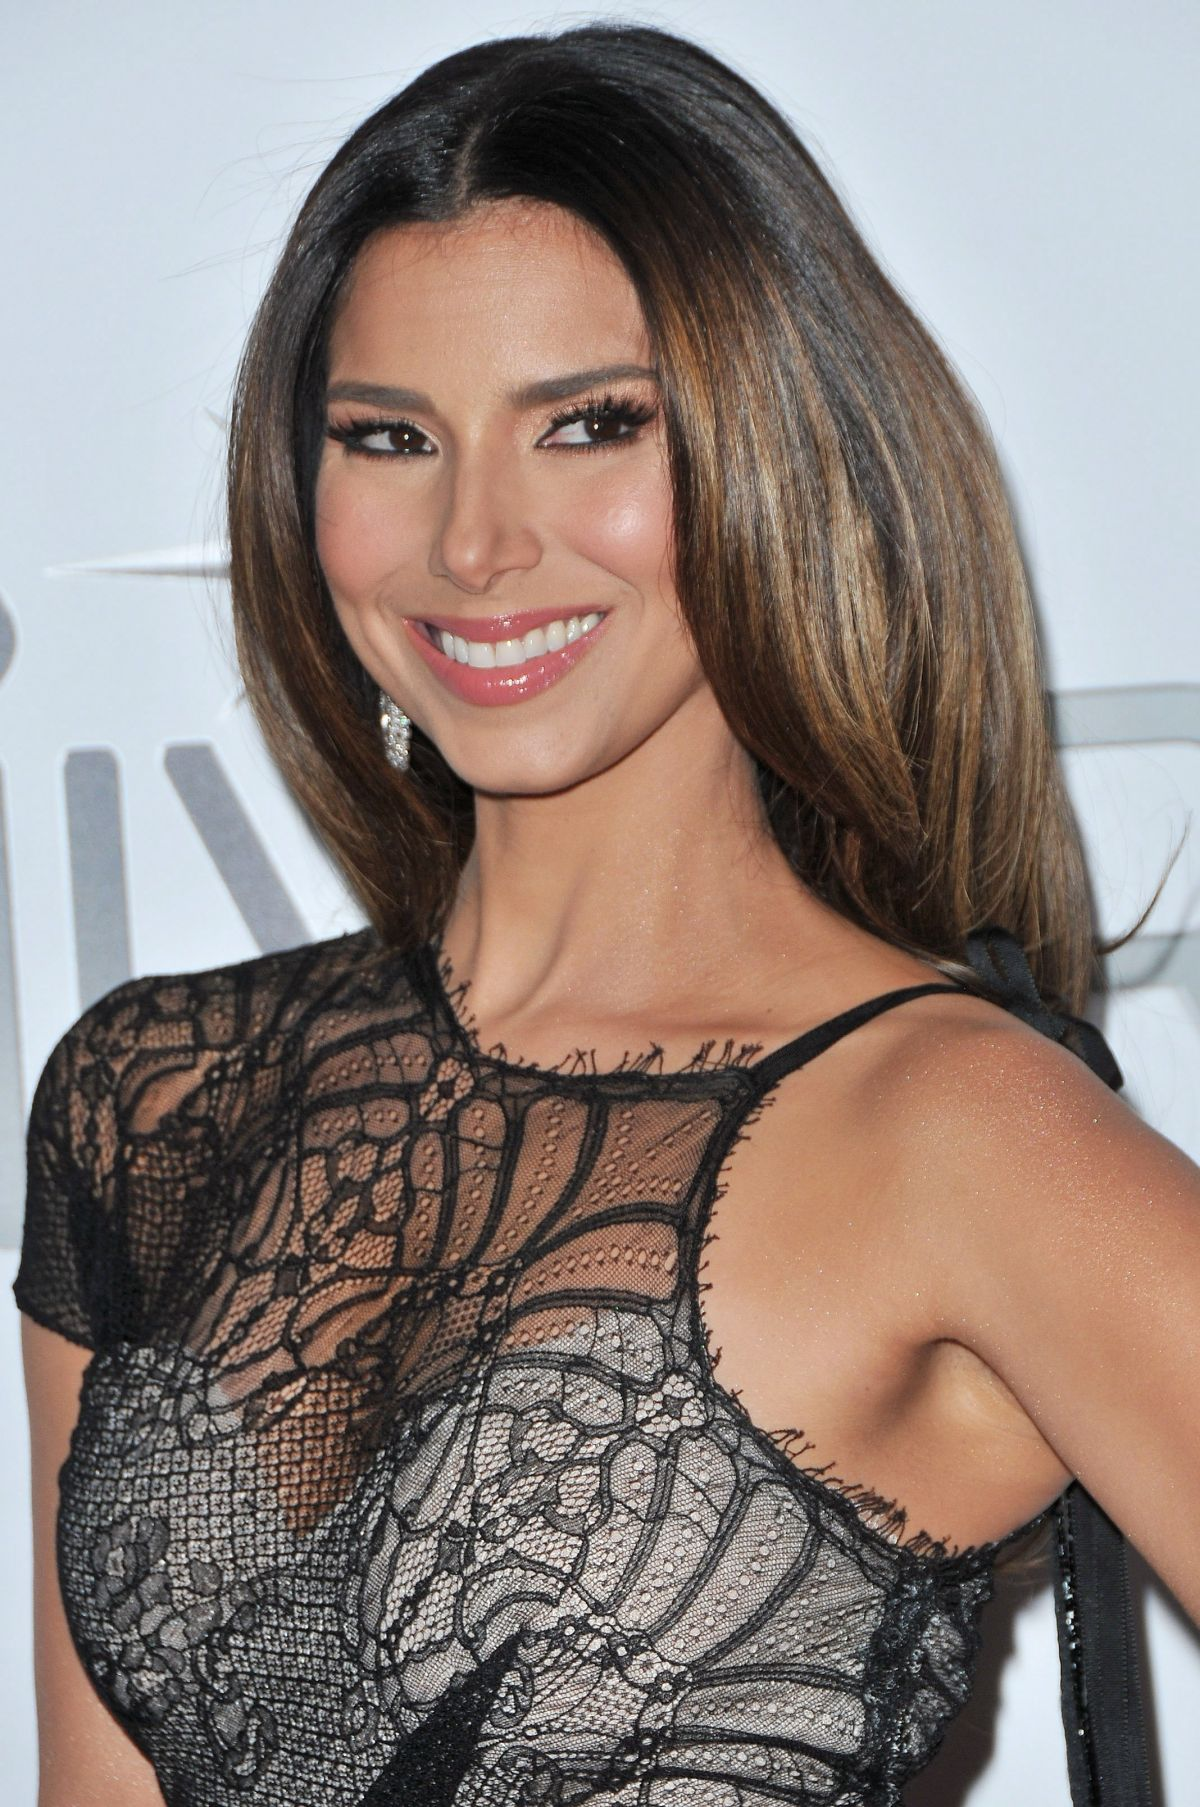 roselyn sanchez песниroselyn sanchez песни, roselyn sanchez 2017, roselyn sanchez film, roselyn sanchez husband, roselyn sanchez facebook, roselyn sanchez daddy yankee, roselyn sanchez desperate housewives, roselyn sanchez fbi, roselyn sanchez wedding, roselyn sanchez filme, roselyn sanchez te quiero, roselyn sanchez instagram, roselyn sanchez 2016, roselyn sanchez interview, roselyn sanchez eric winter, roselyn sanchez photo, roselyn sanchez height and weight, roselyn sanchez biografia, roselyn sanchez wallpaper, roselyn sanchez music